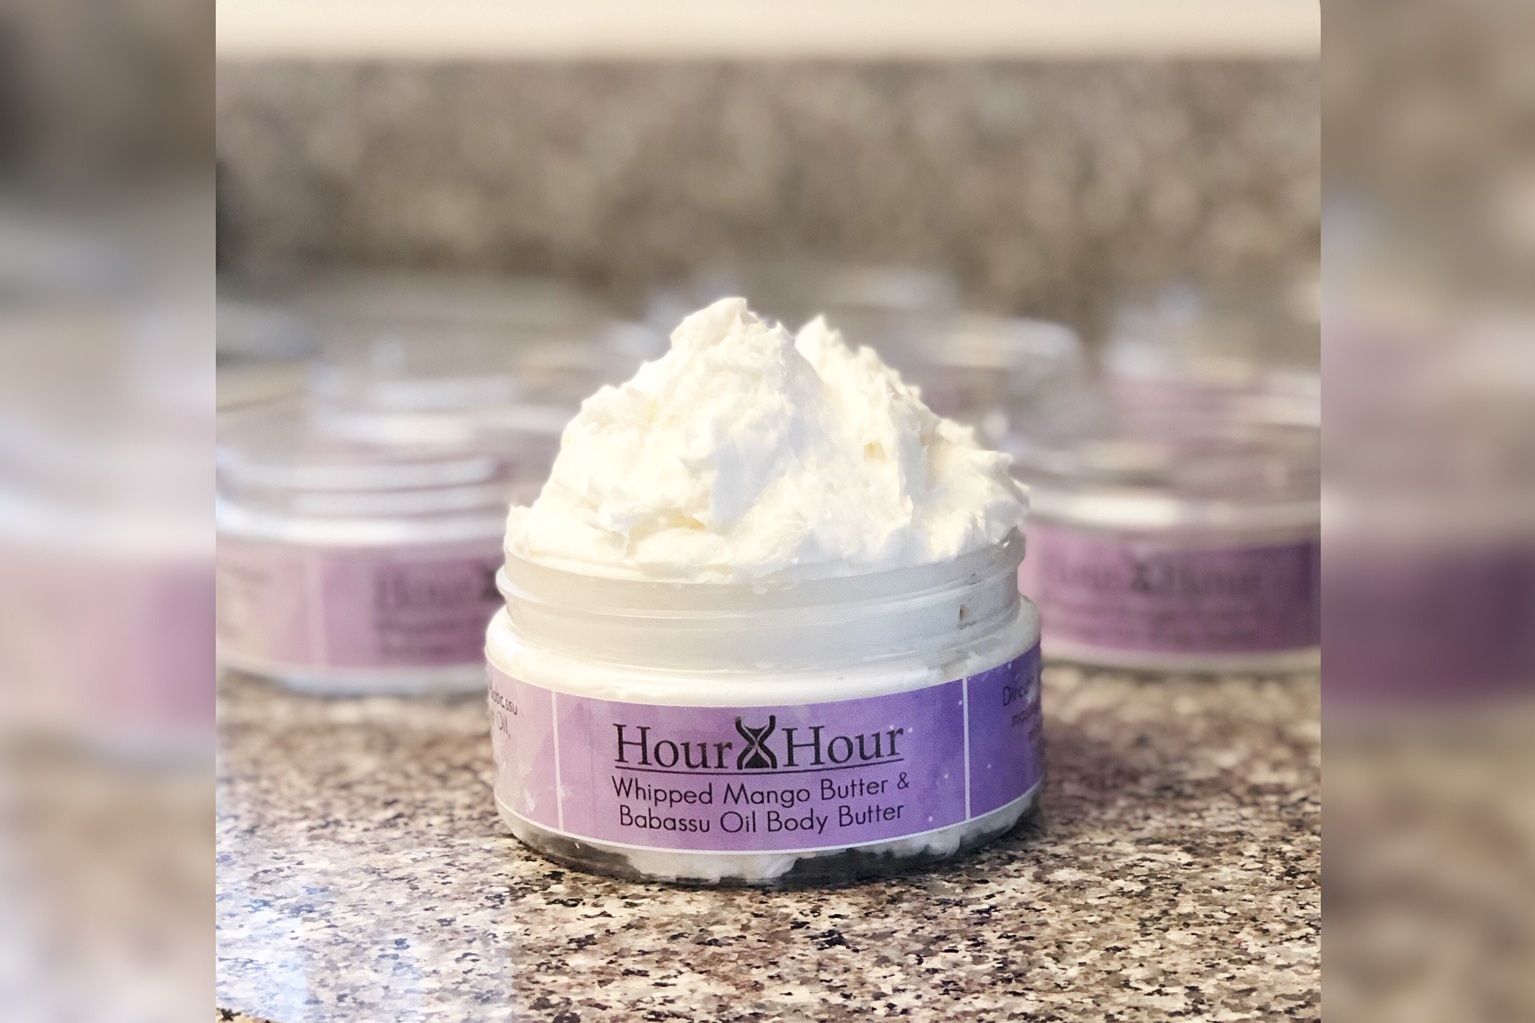 Hour-X-Hour-Whipped-Mango-Body-Butter